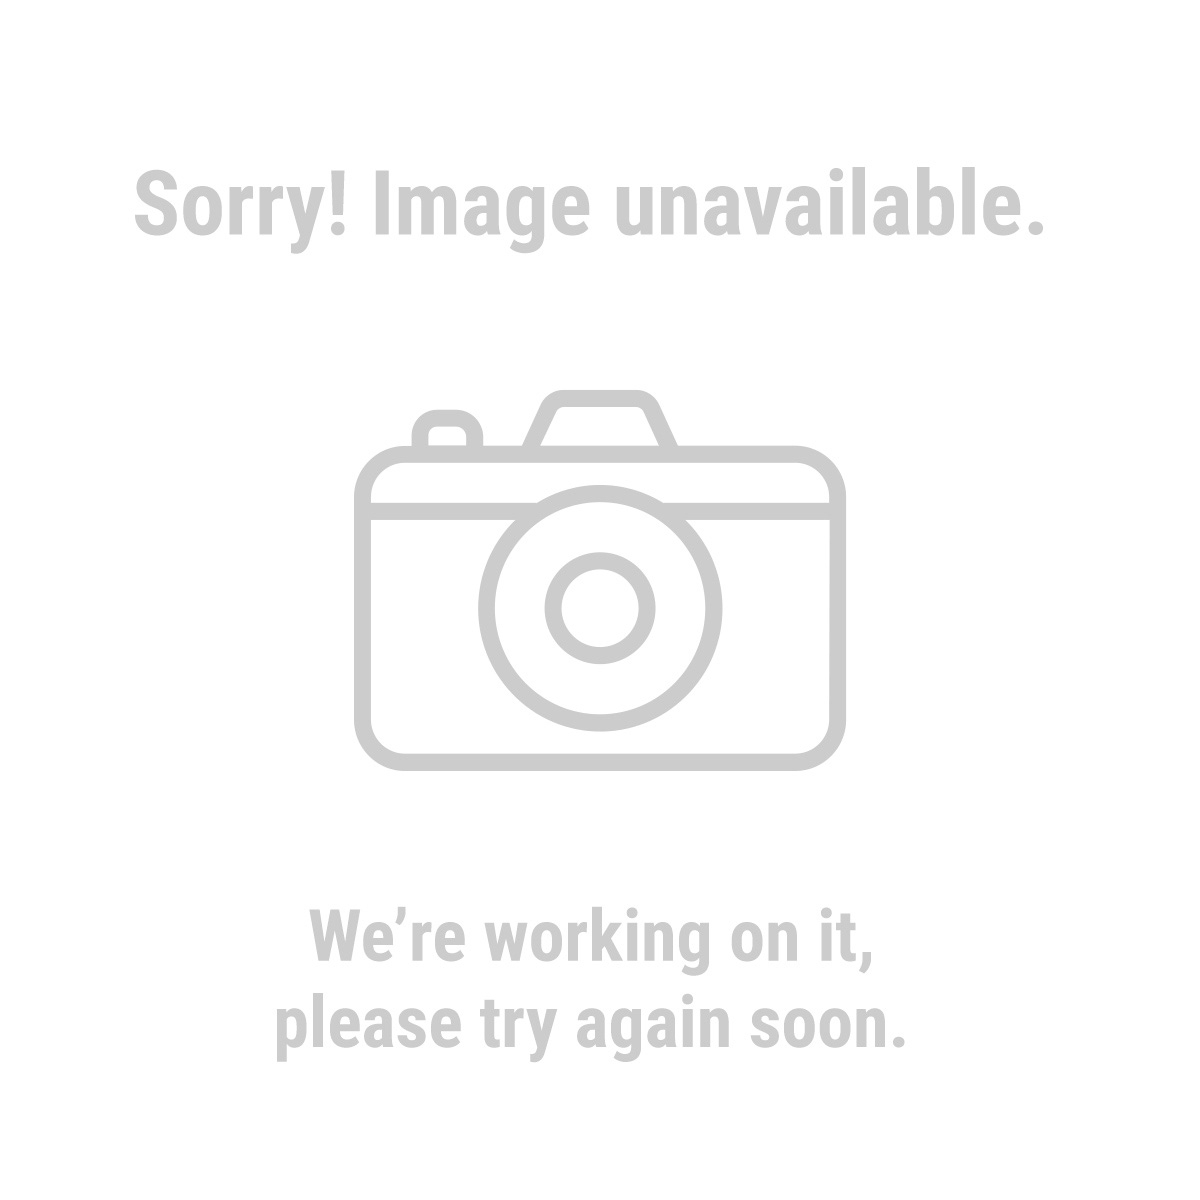 Warrior 68459 33 Piece Security Bit Set